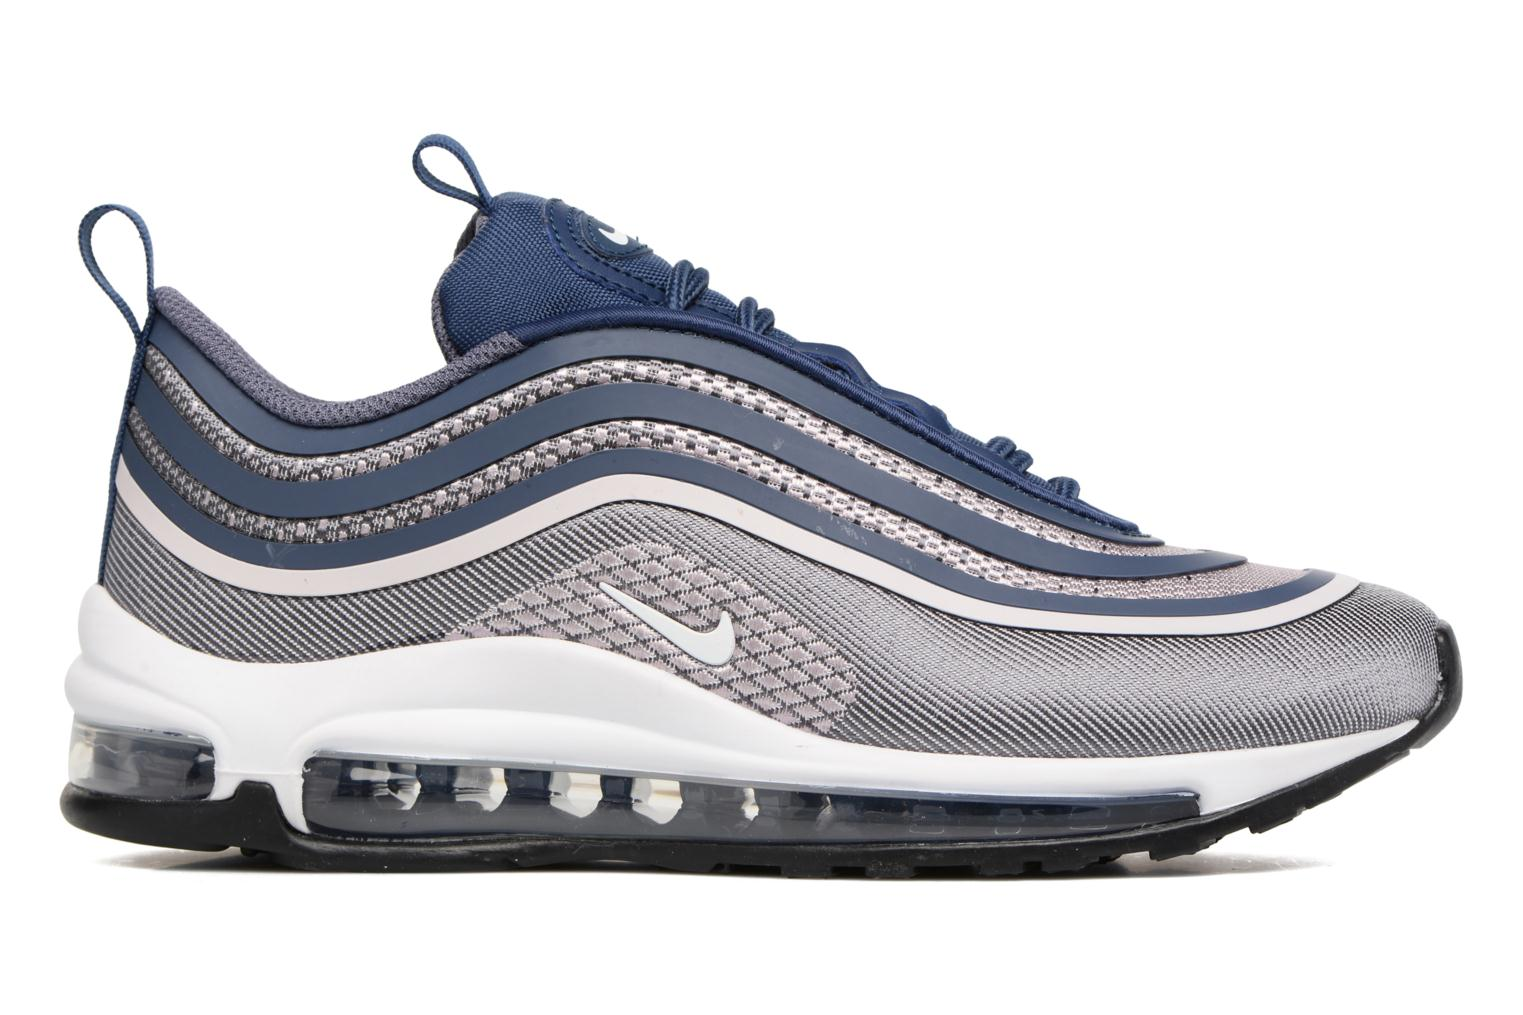 Air Max 97 Ul 17 (Gs) Light Carbon/White-Barely Rose-Navy